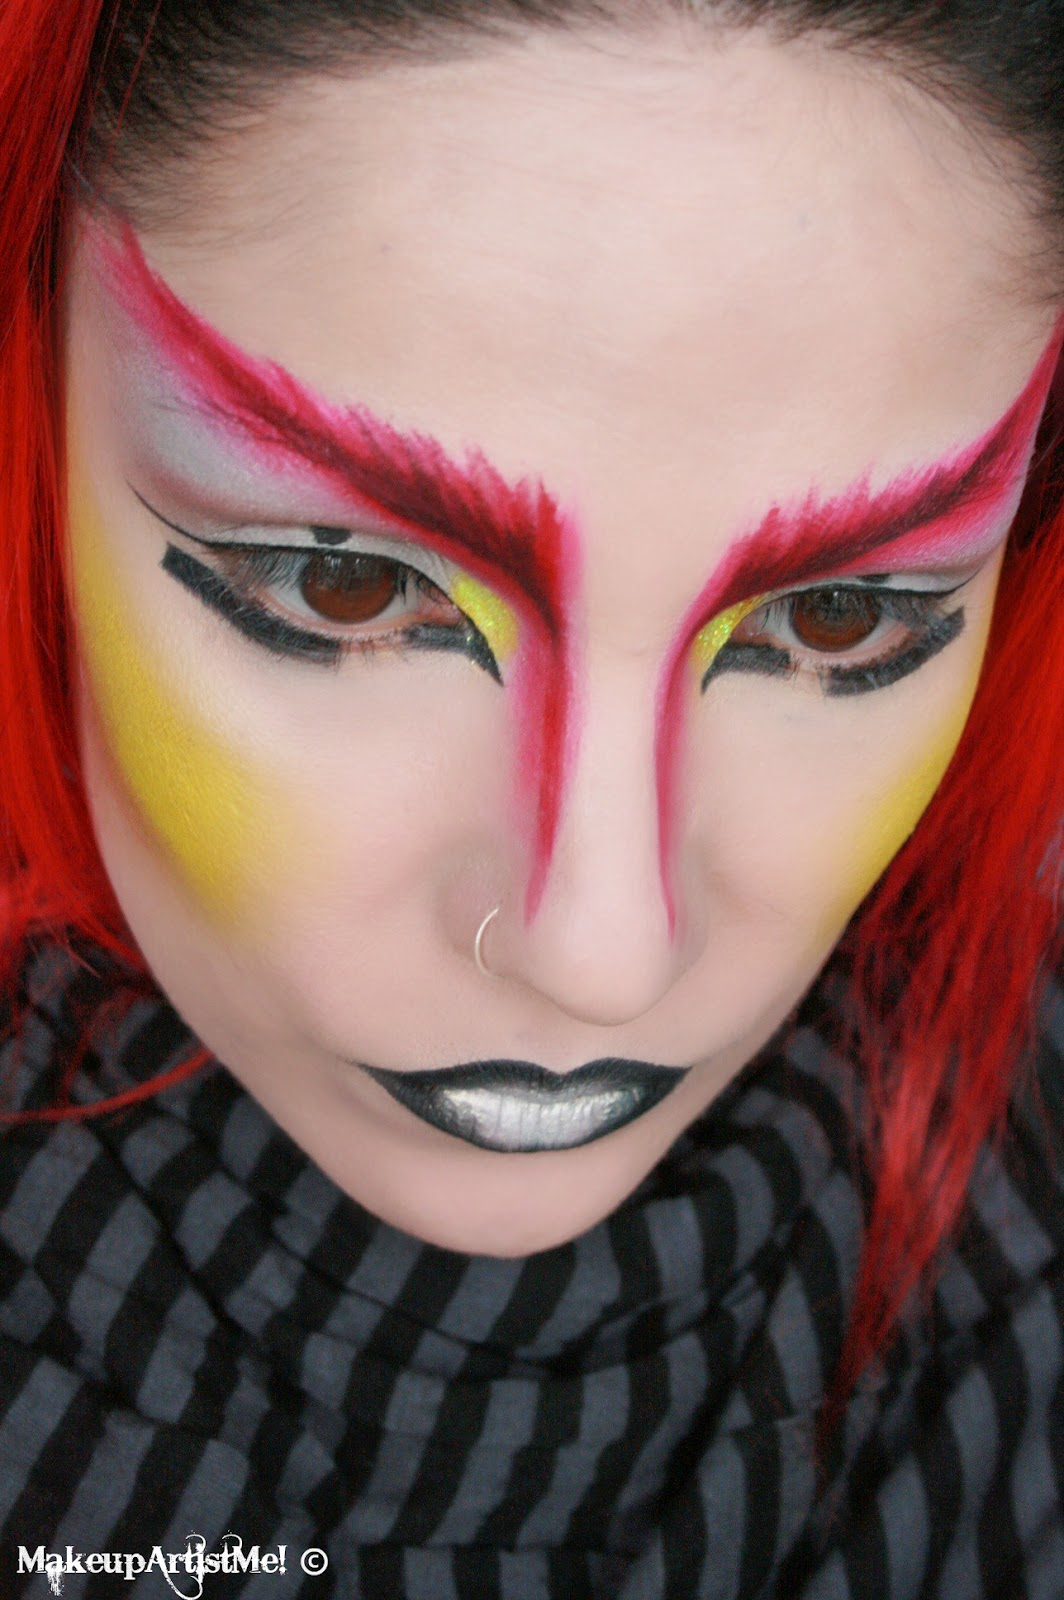 Make Up Application: Make-up Artist Me!: Warrior -- An Artistic Makeup Look